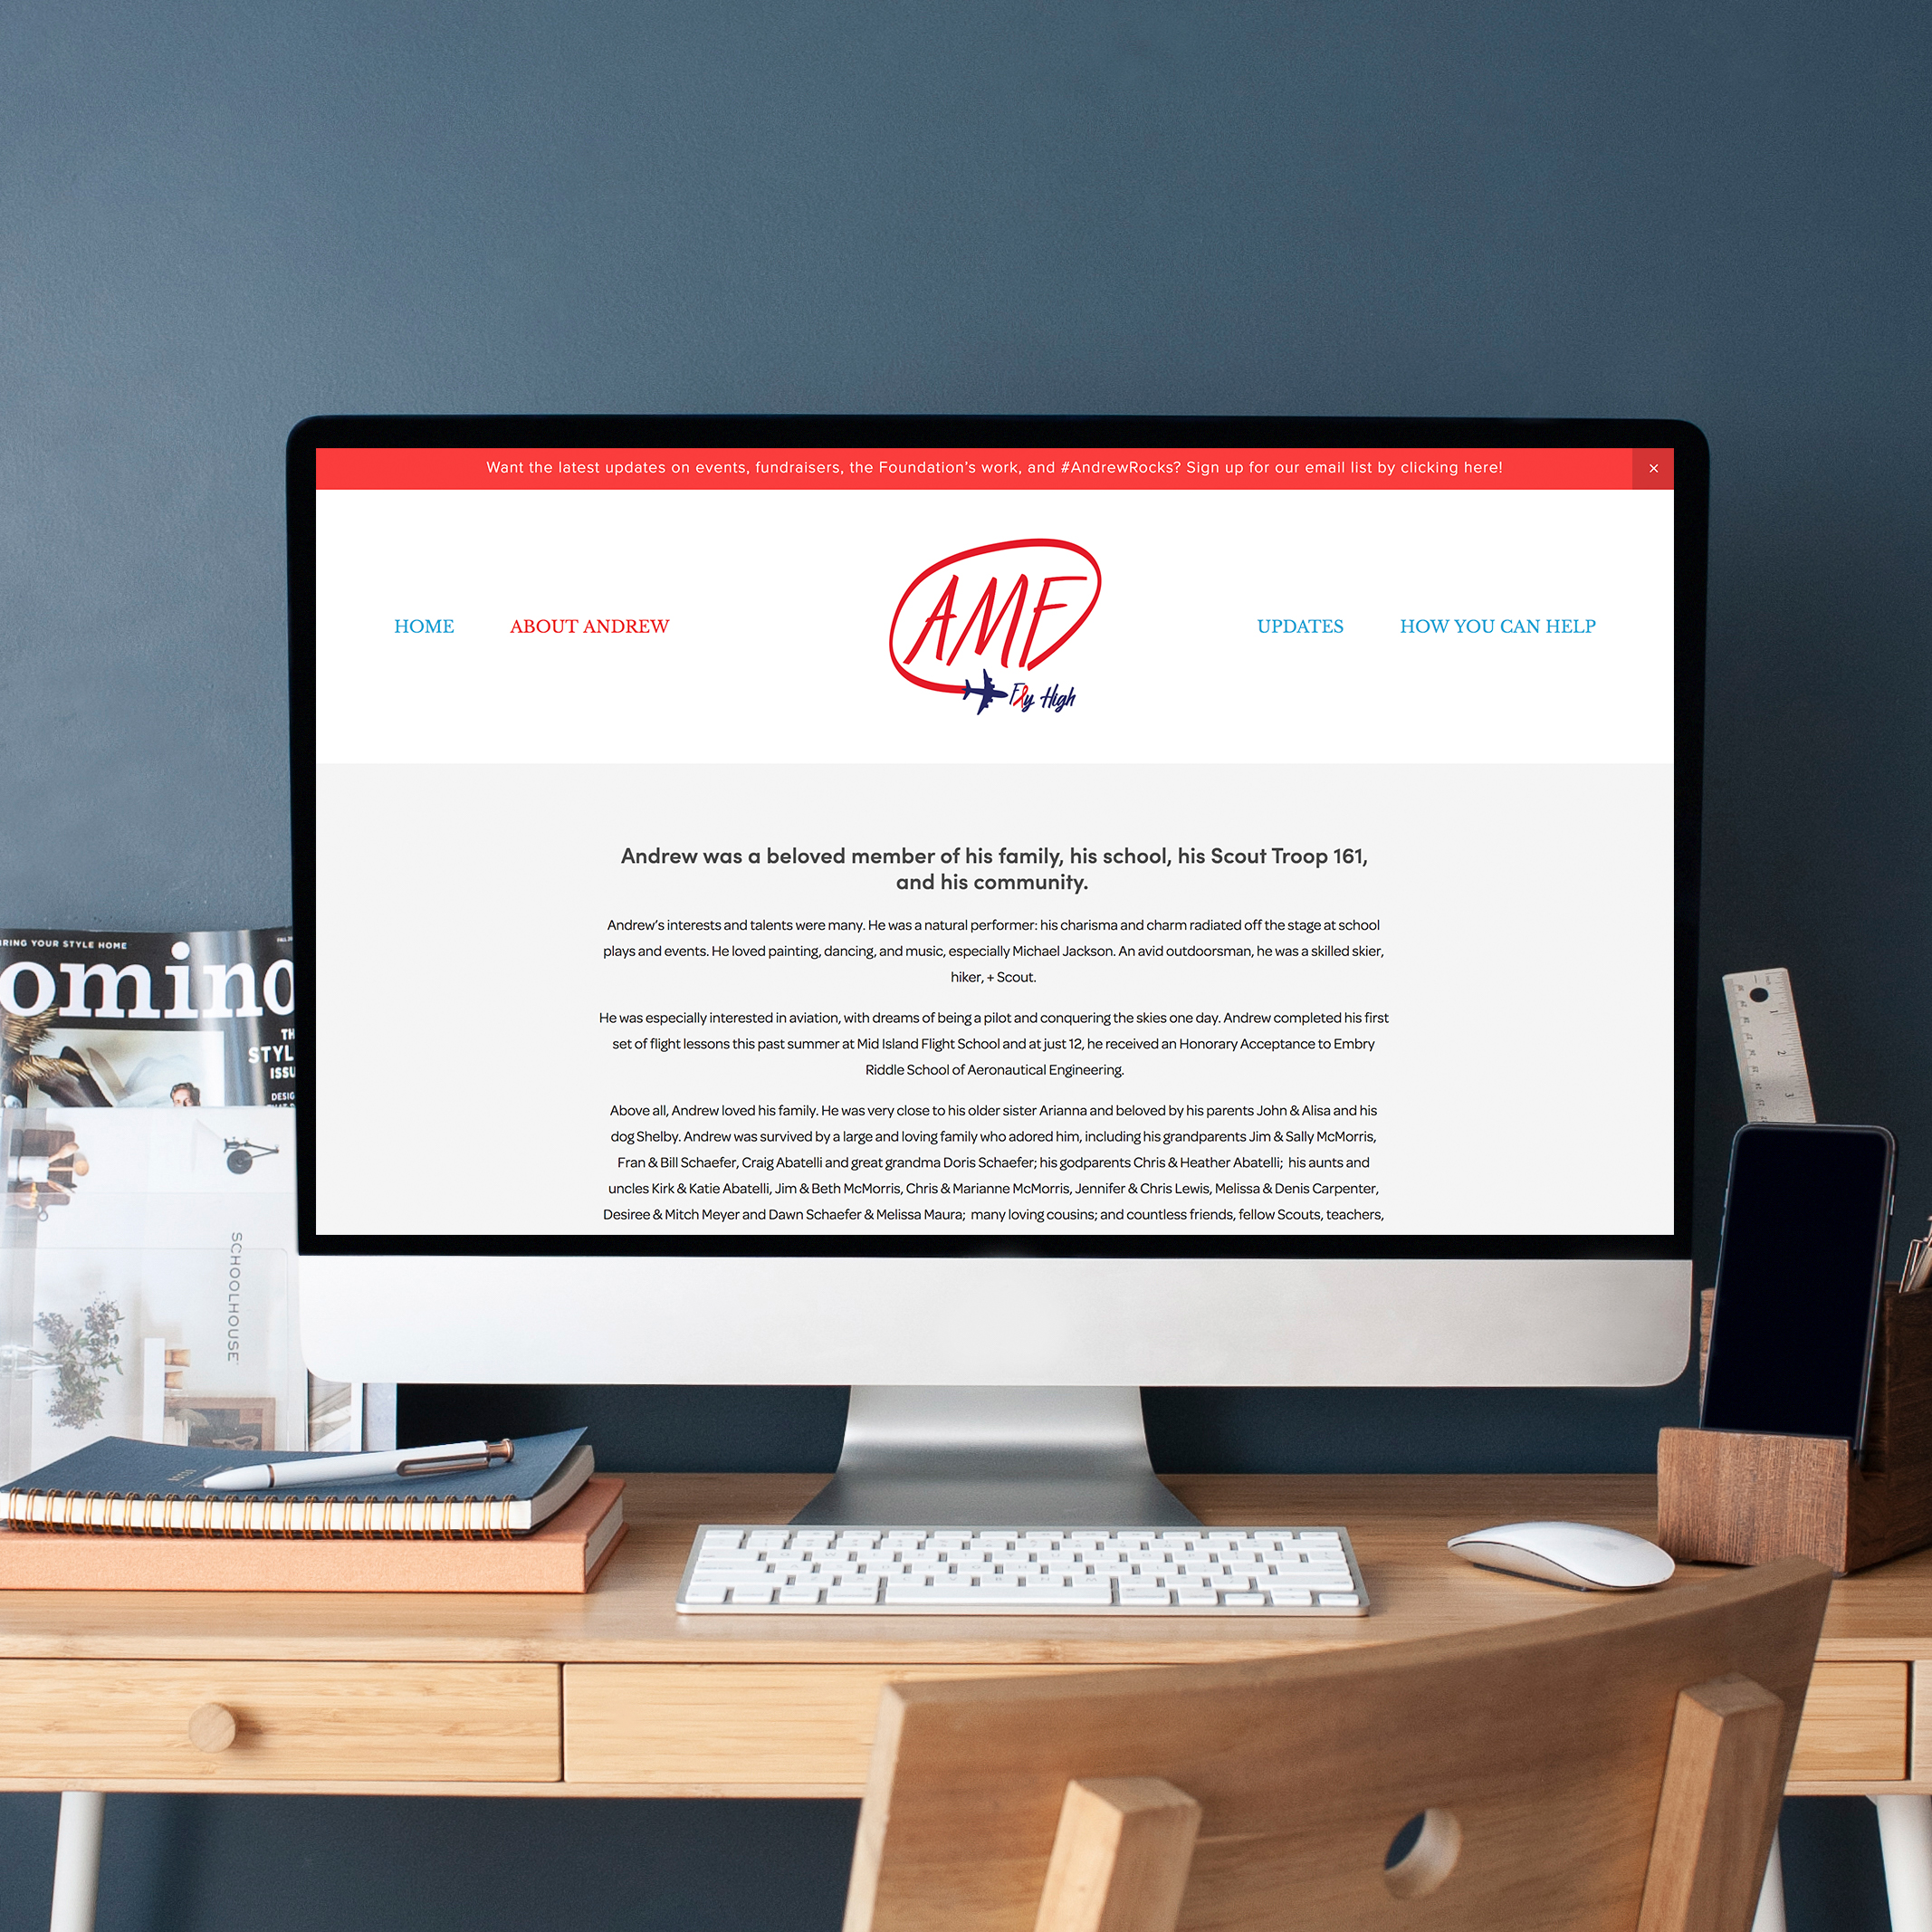 Site Mockup 3 - About Andrew page.jpg